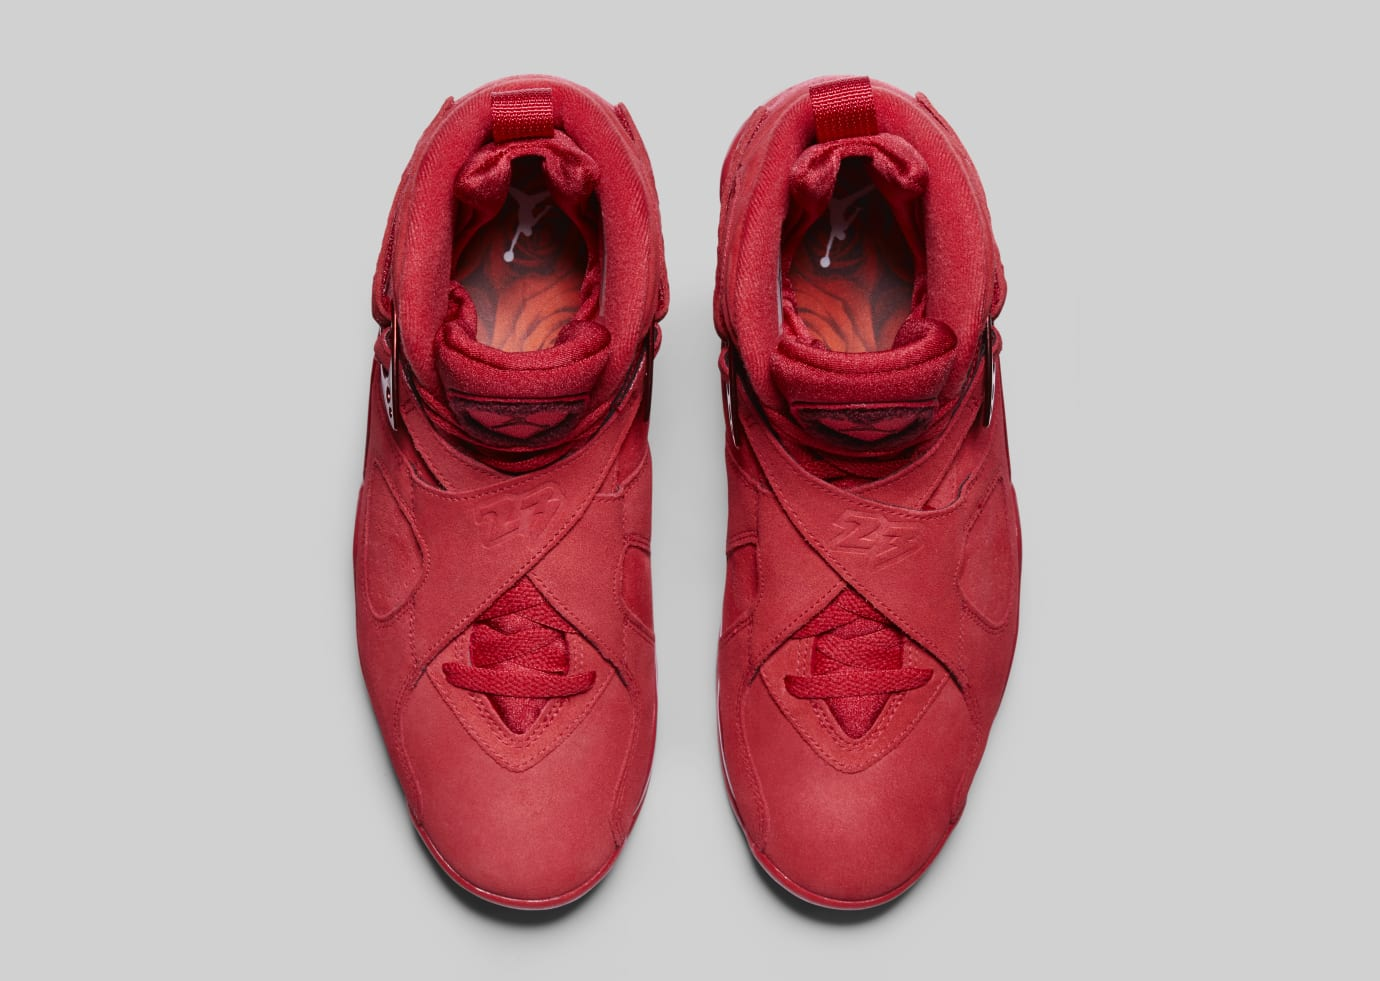 new product 6995c 5bb20 Image via Nike Air Jordan 8  Valentine s Day  AQ2449-614 (Top)